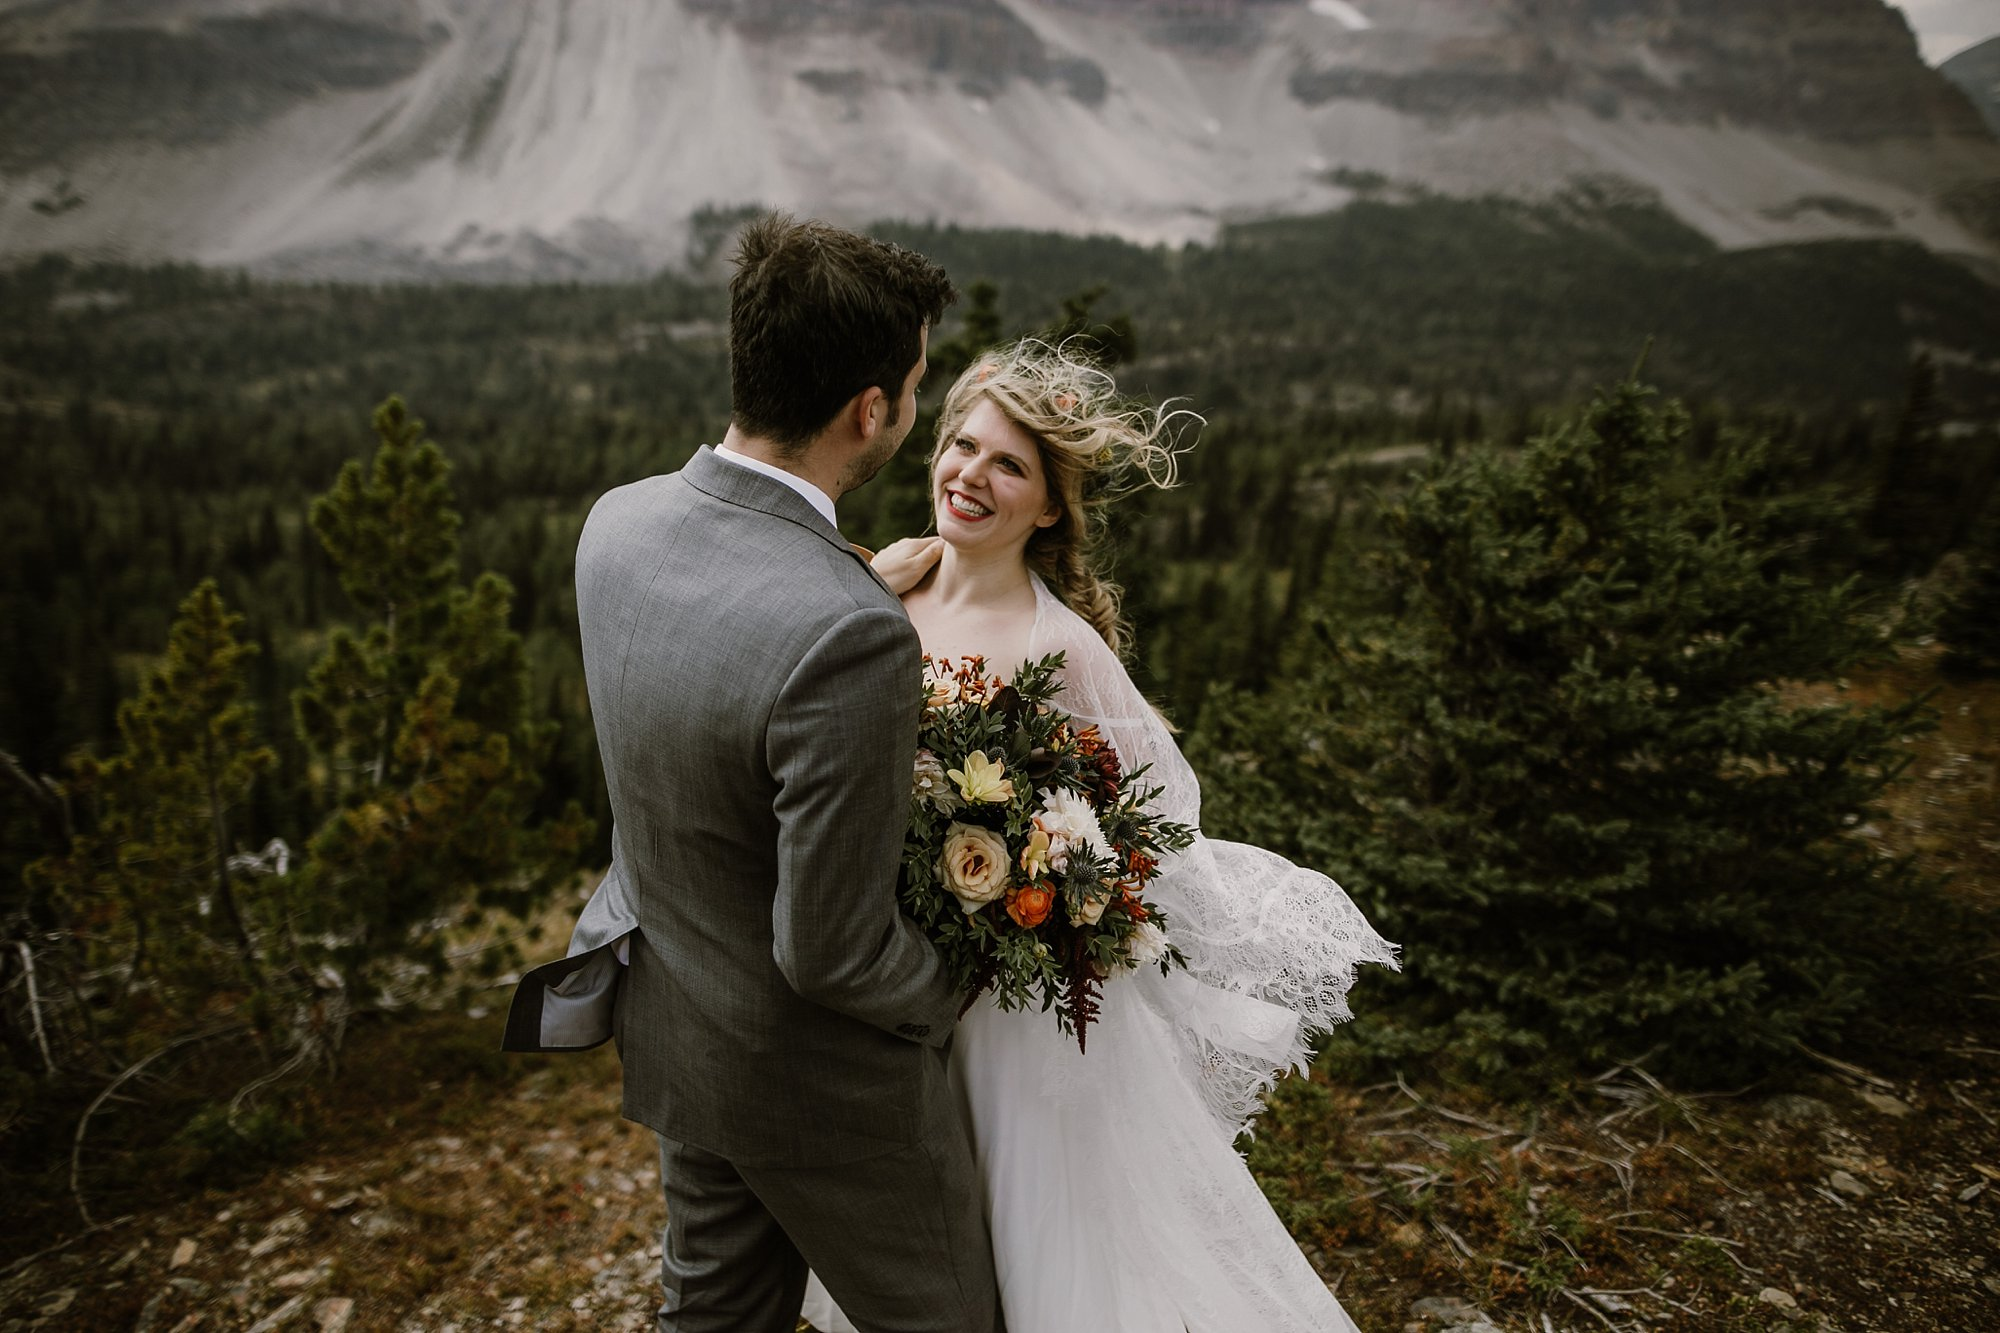 banff-canada-elopement-wedding_0014.jpg